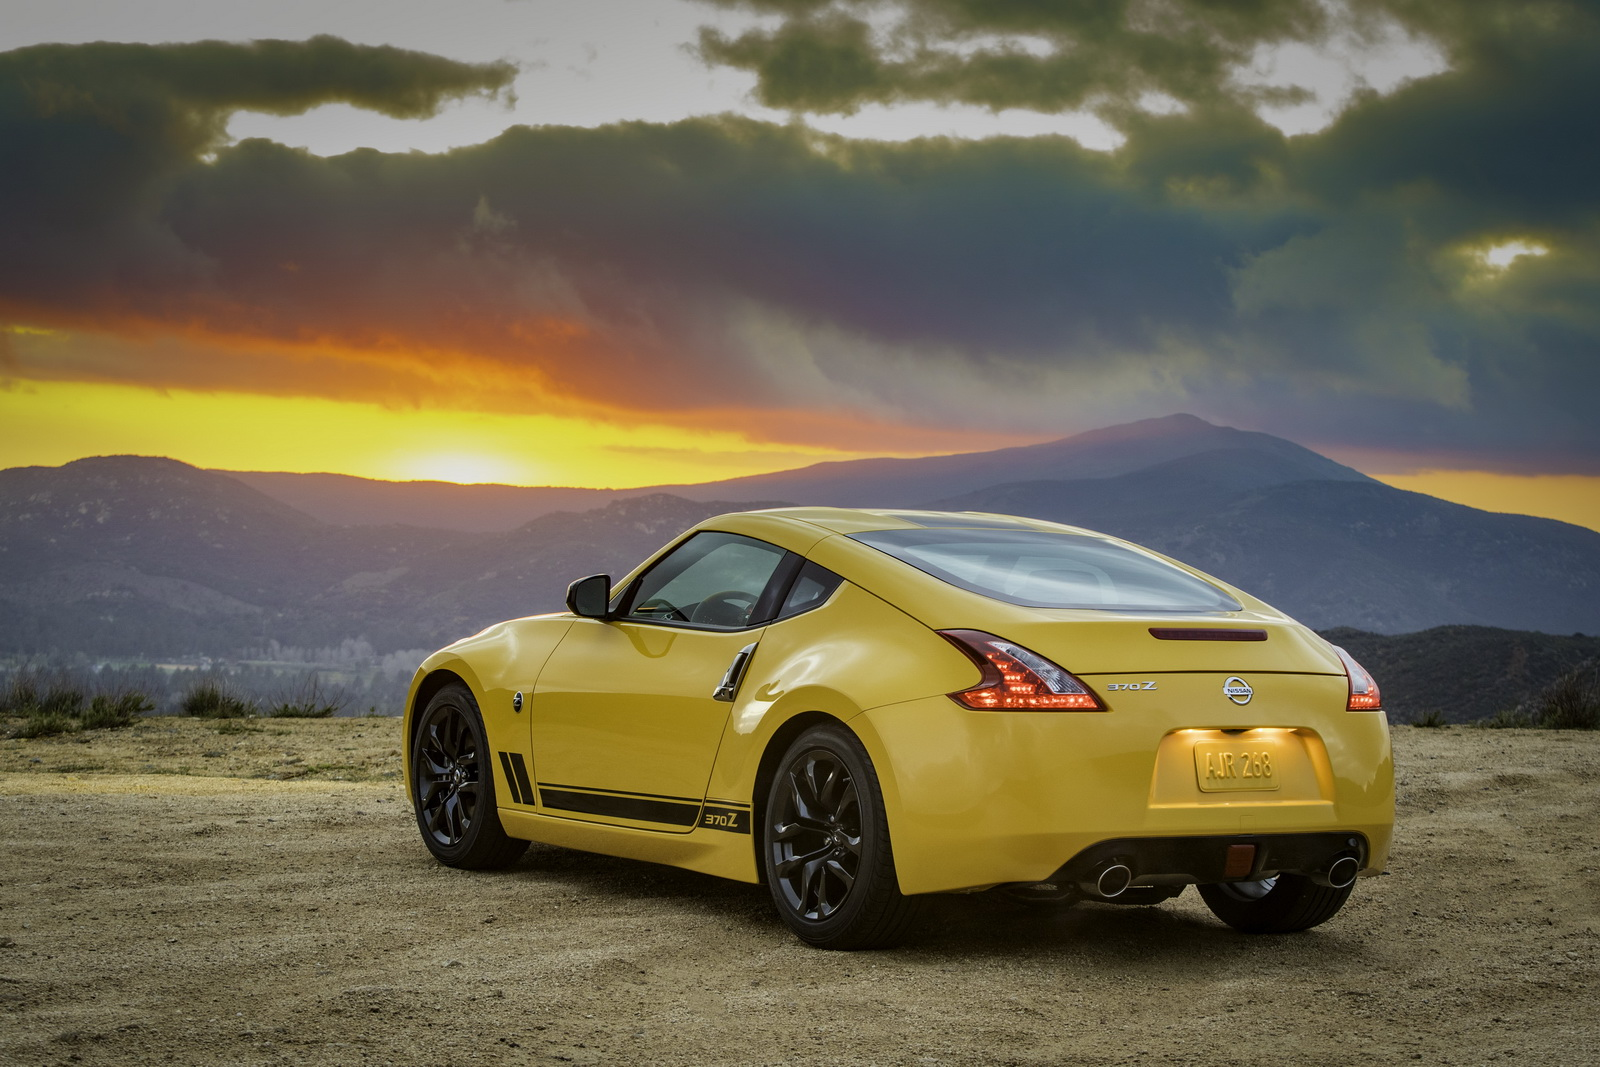 2018 nissan 370z coupe priced from 29 900 nismo from 45 690. Black Bedroom Furniture Sets. Home Design Ideas